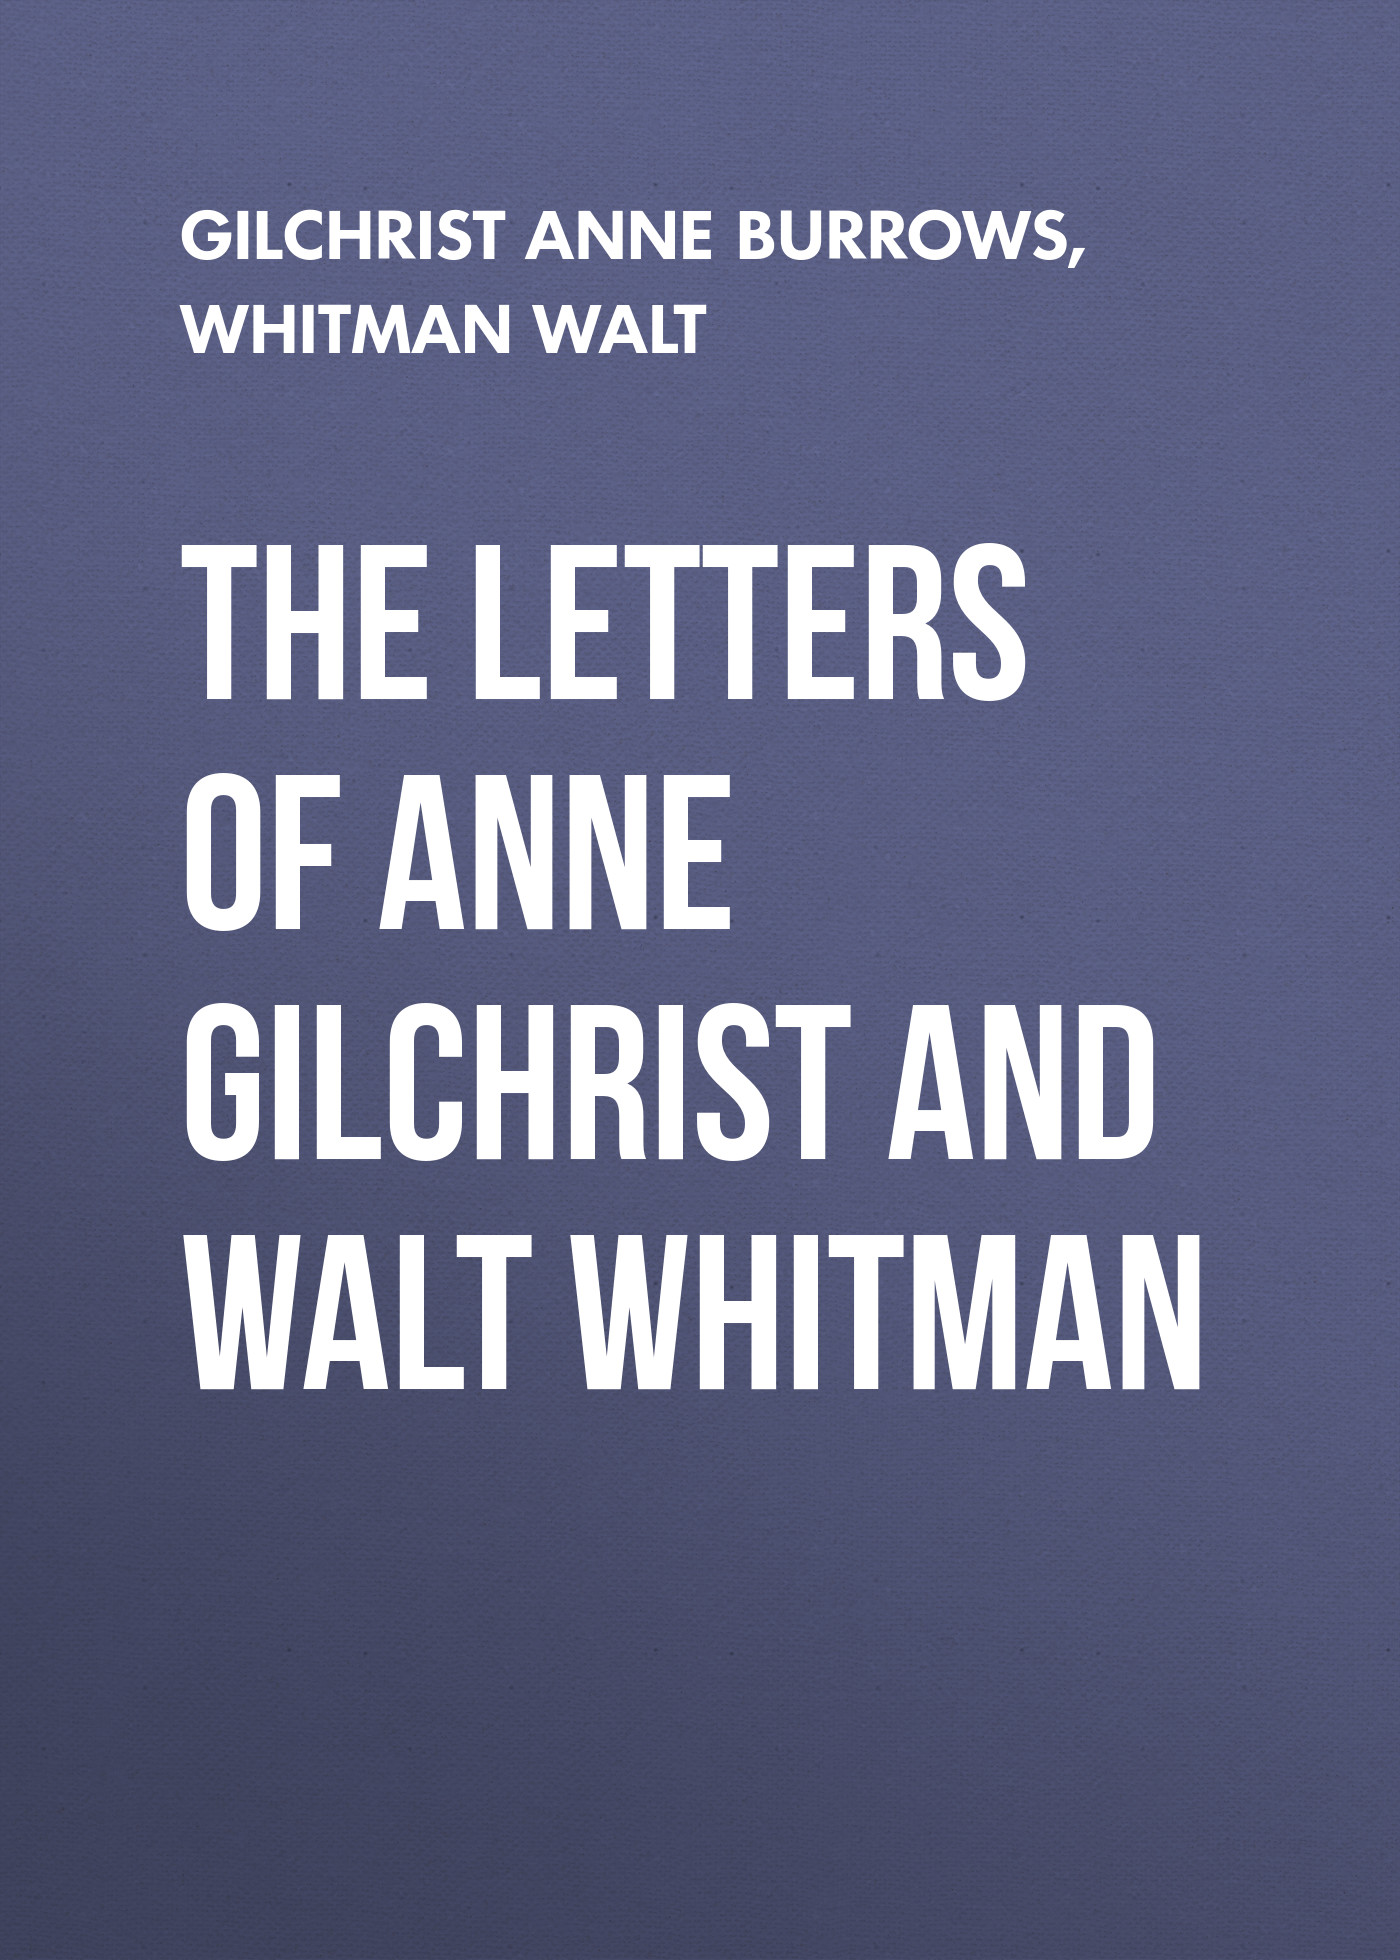 Уолт Уитмен The Letters of Anne Gilchrist and Walt Whitman gilchrist anne burrows mary lamb